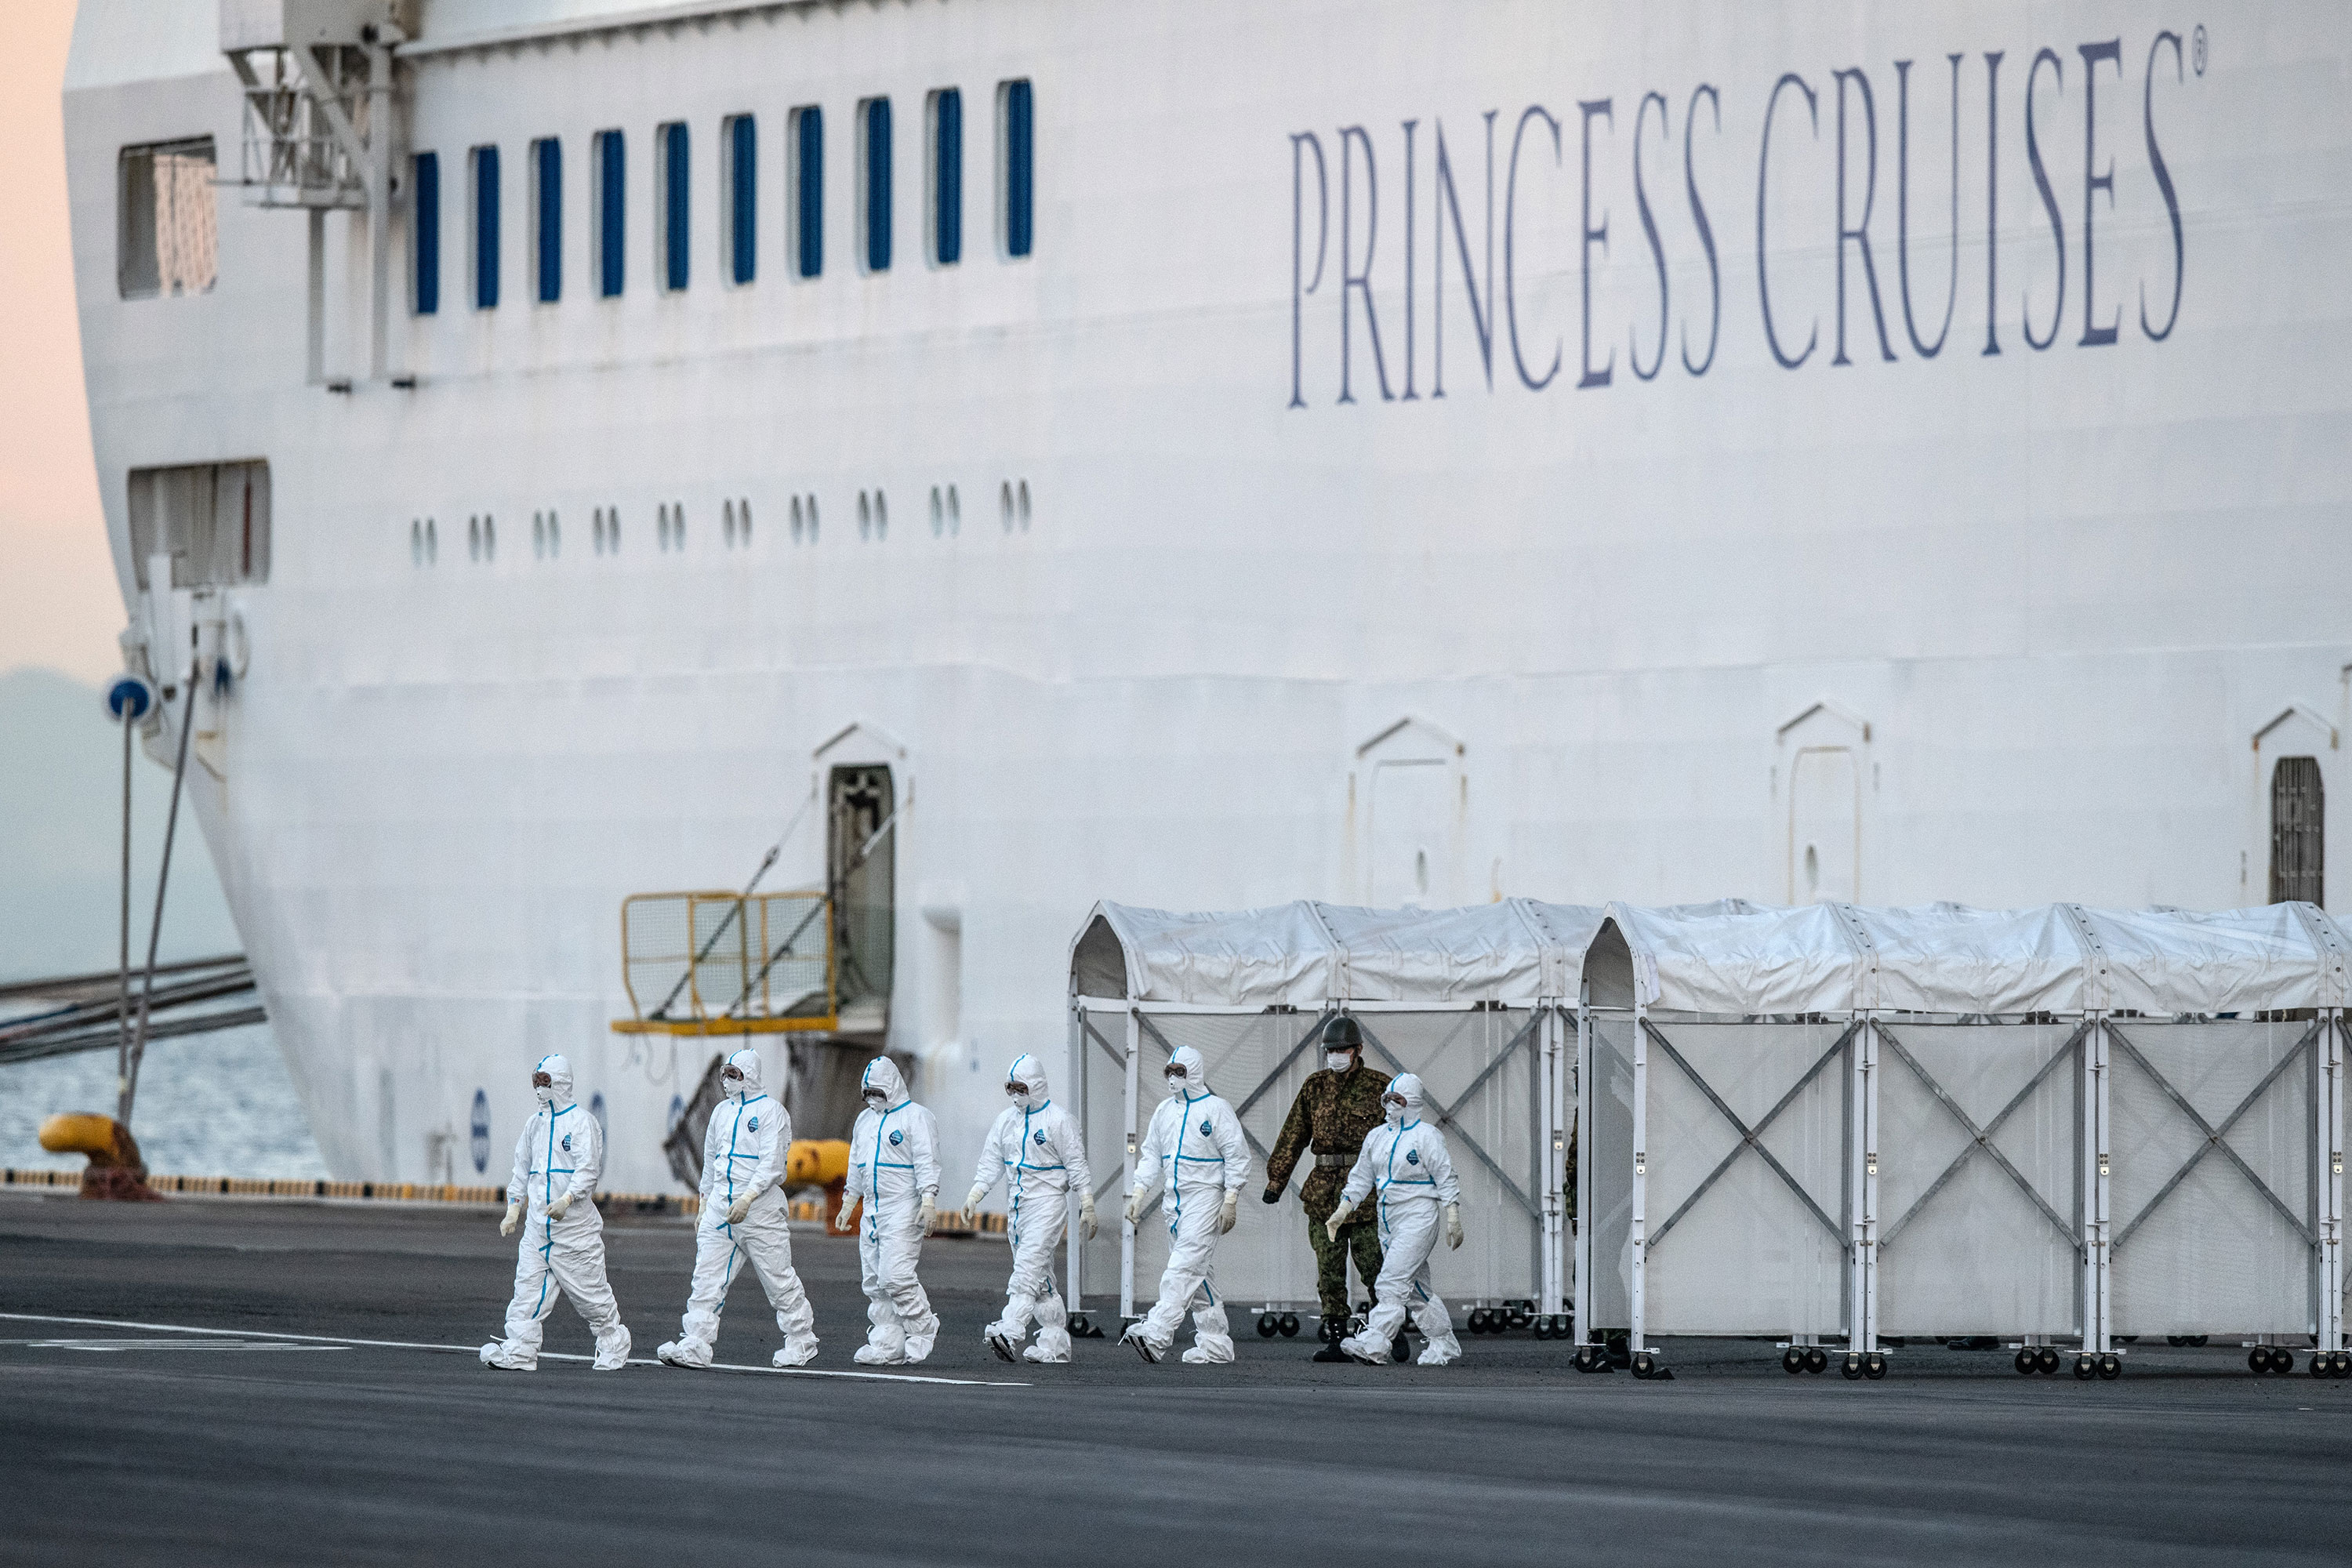 Emergency workers in protective clothing exit the Diamond Princess cruise ship at Daikoku Pier in Yokohama, Japan, on February 10.